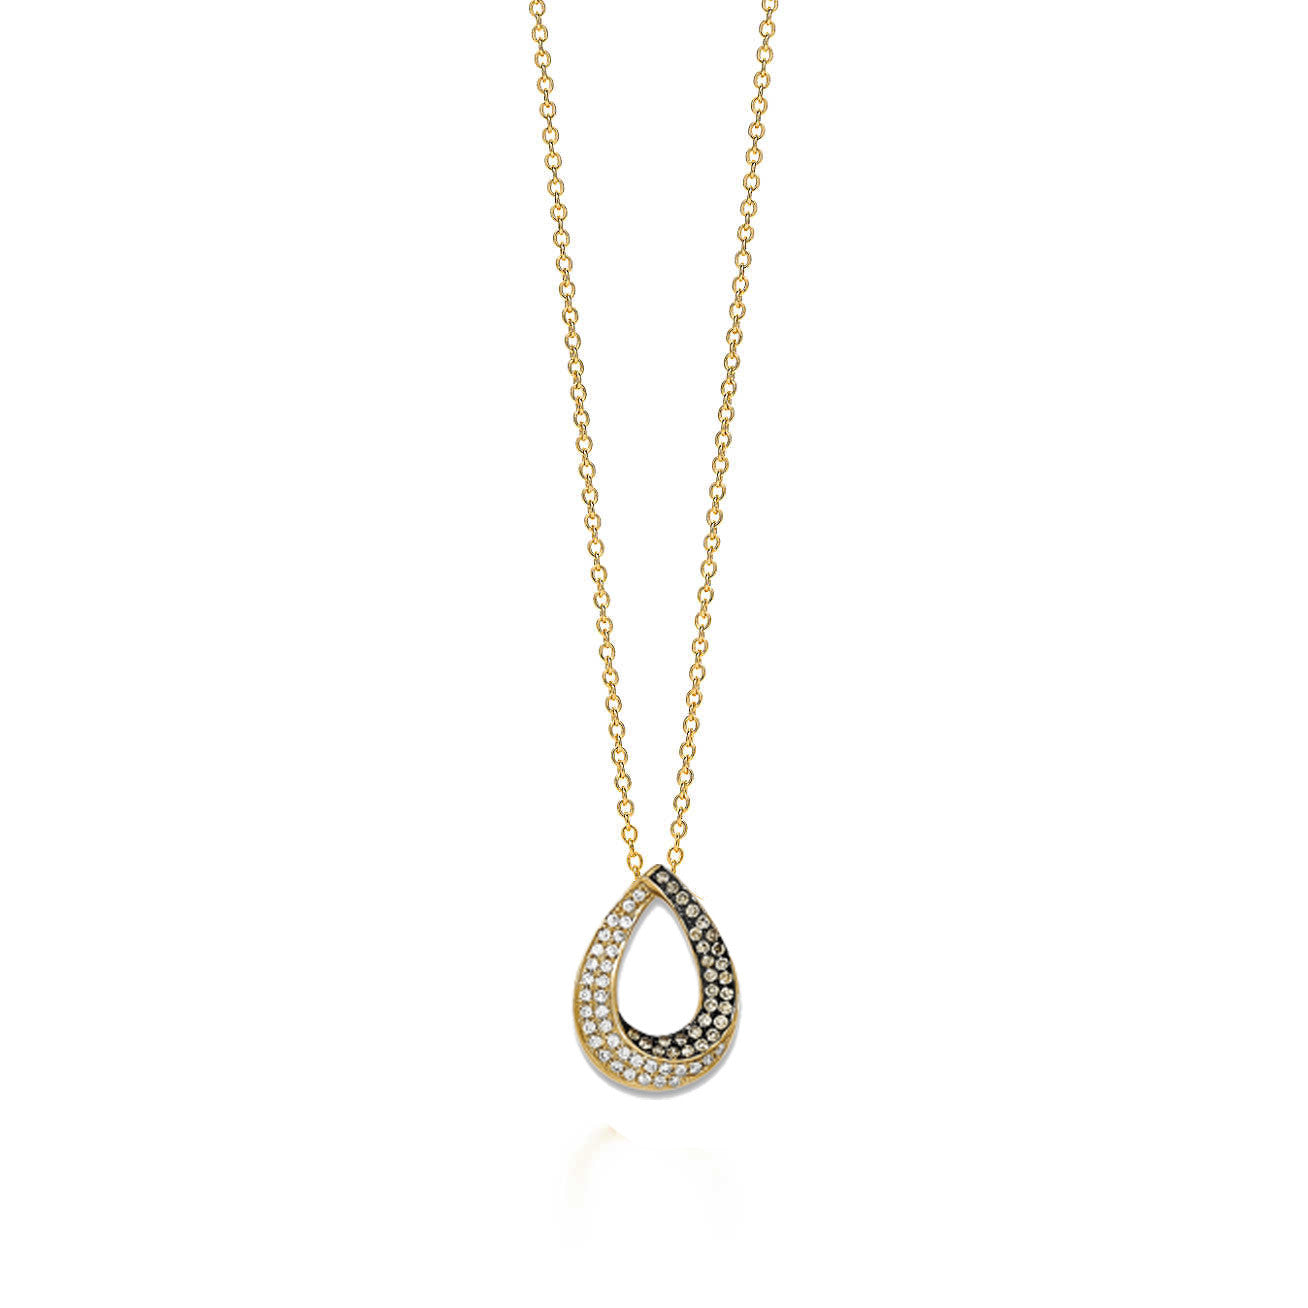 14KY Pave Champagne/White Diamond Teardrop Necklace - Crestwood Jewelers